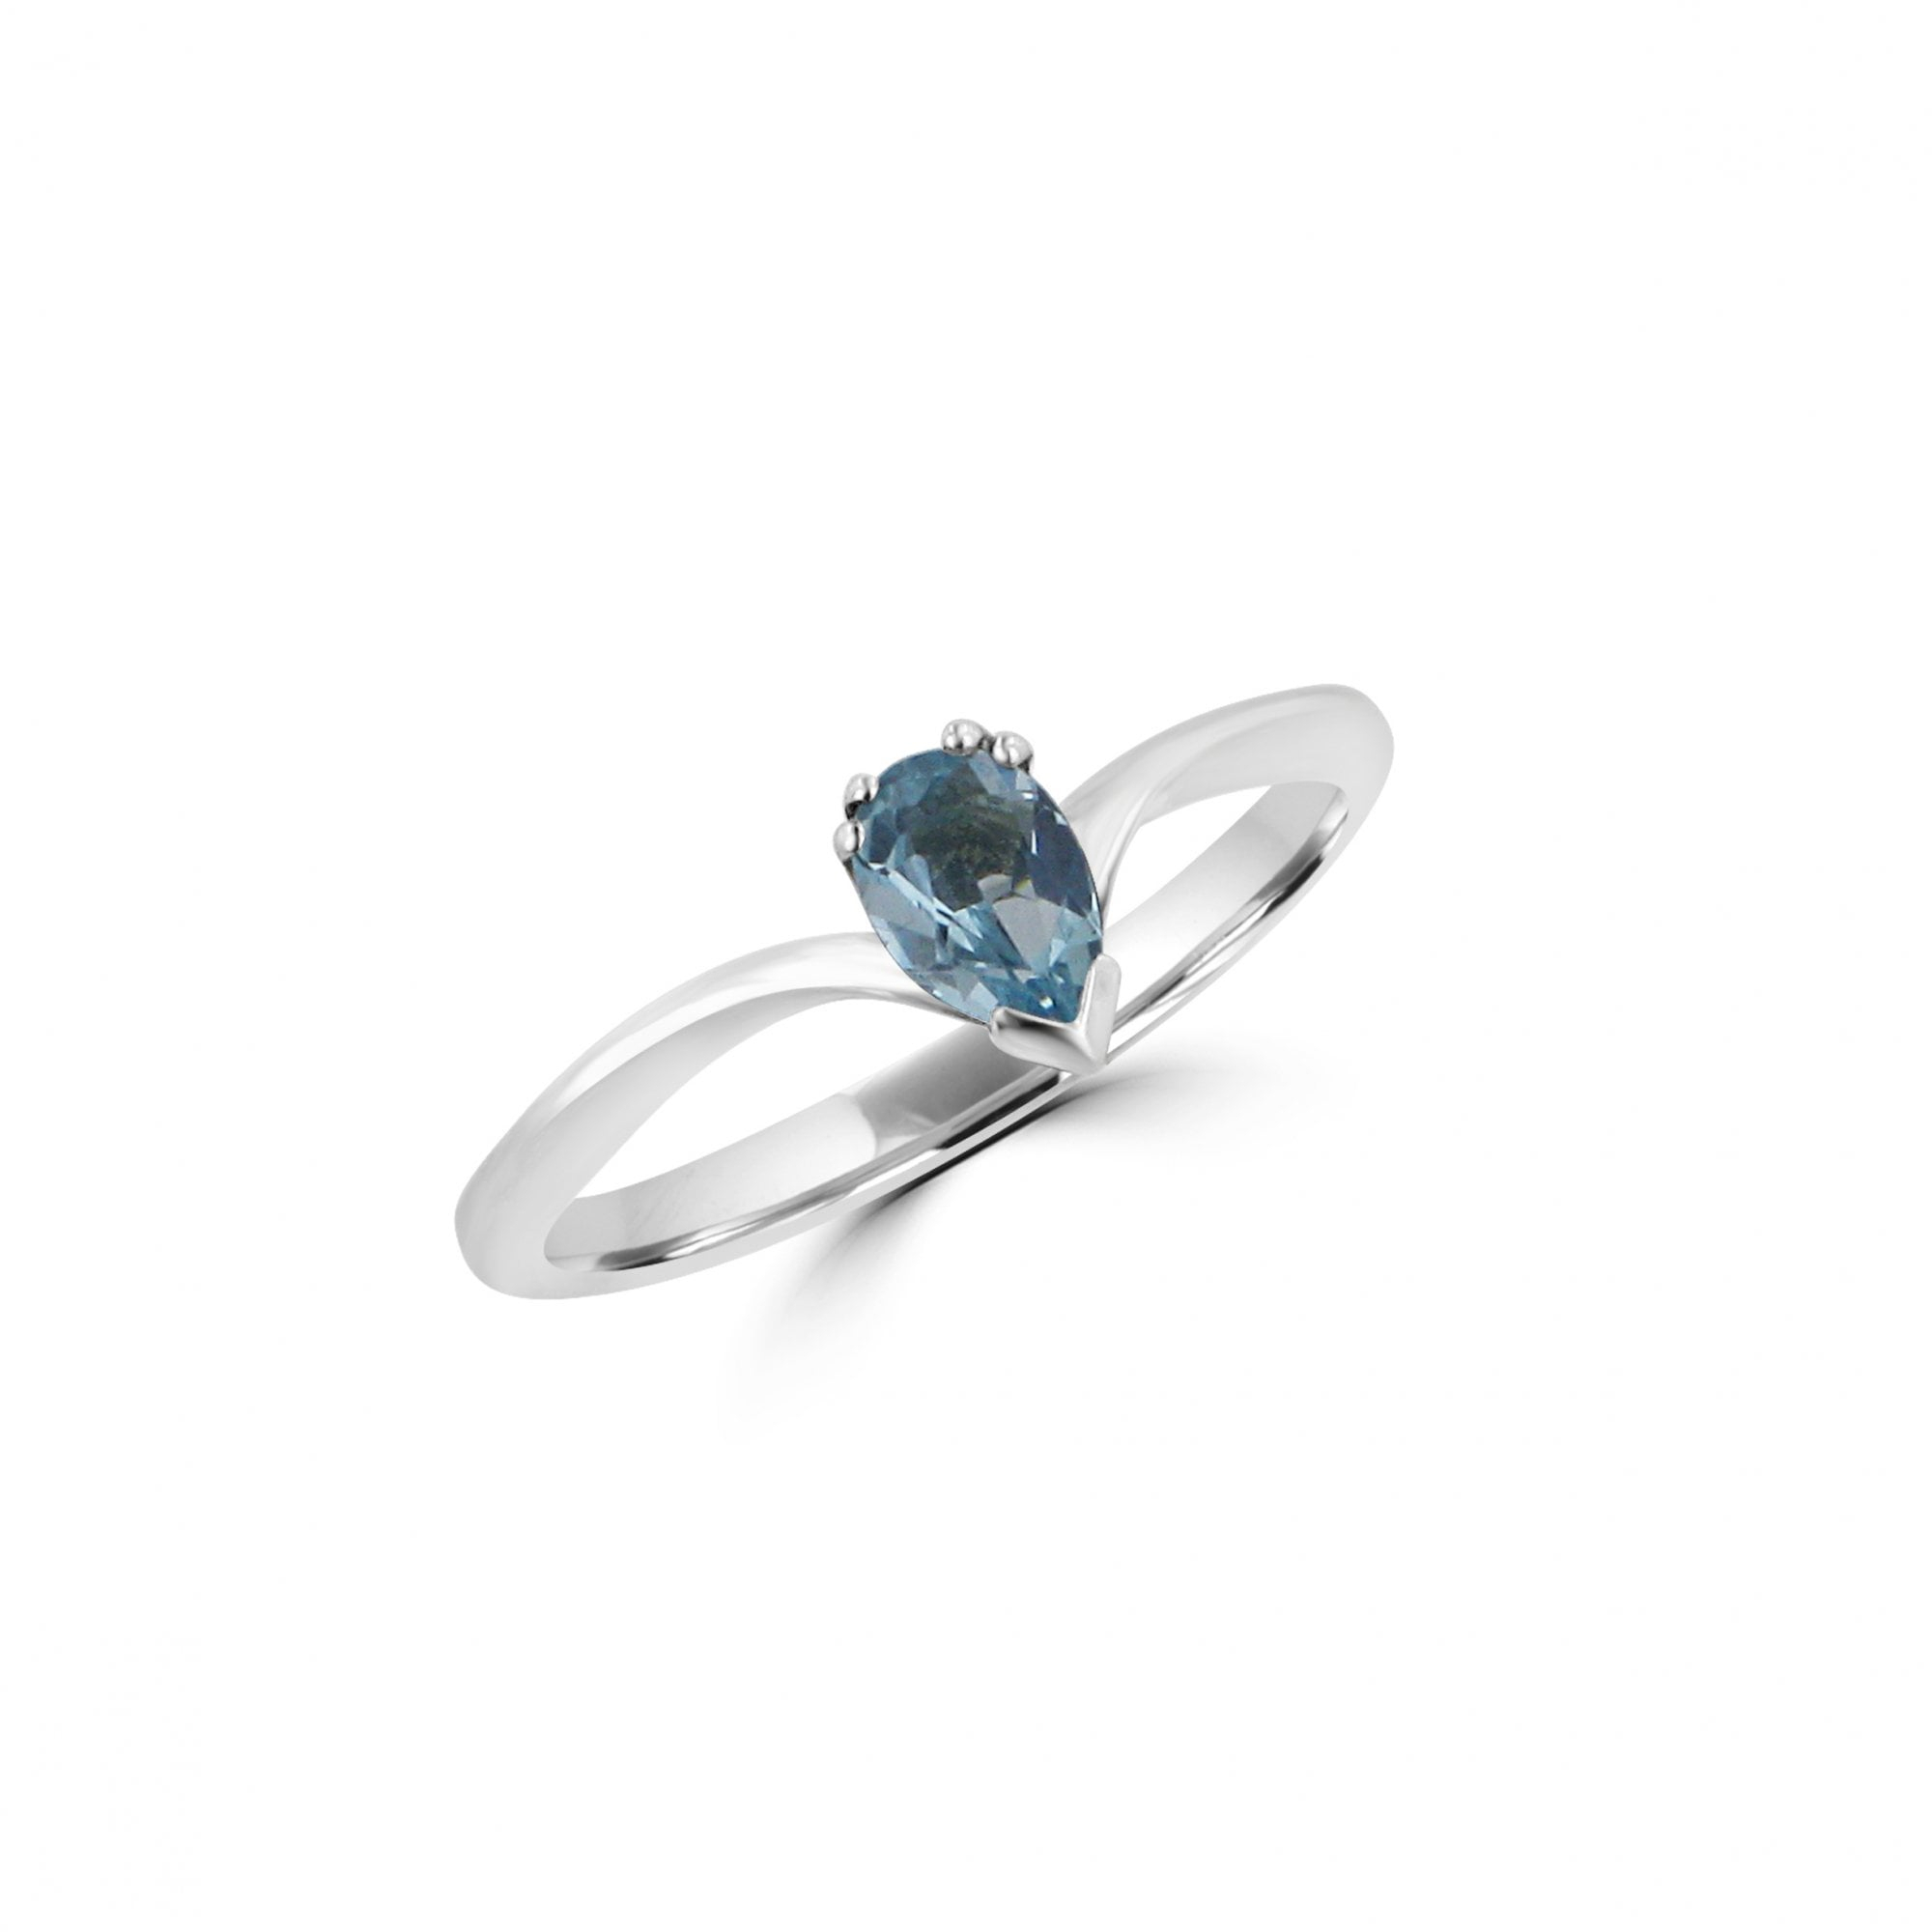 Avanti Sterling Silver Wishbone Ring With Pear Blue Topaz Pertaining To Most Current Tiara Wishbone Rings (View 16 of 25)